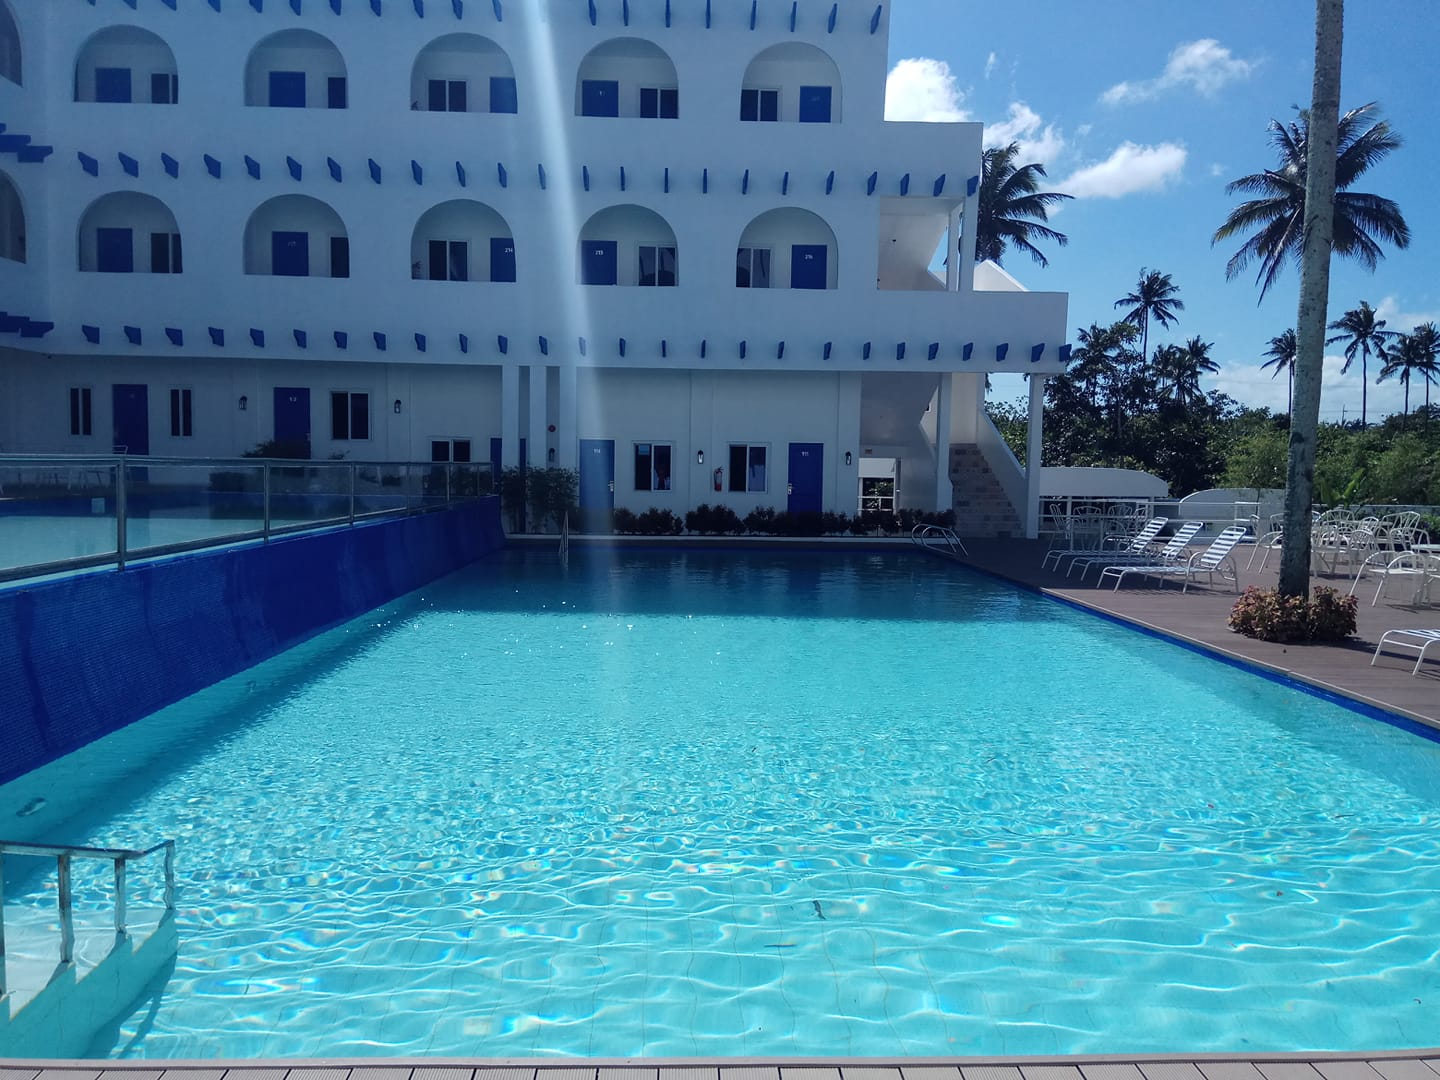 Brizo Hotel and Mountain View Resort | An hour away from Metro